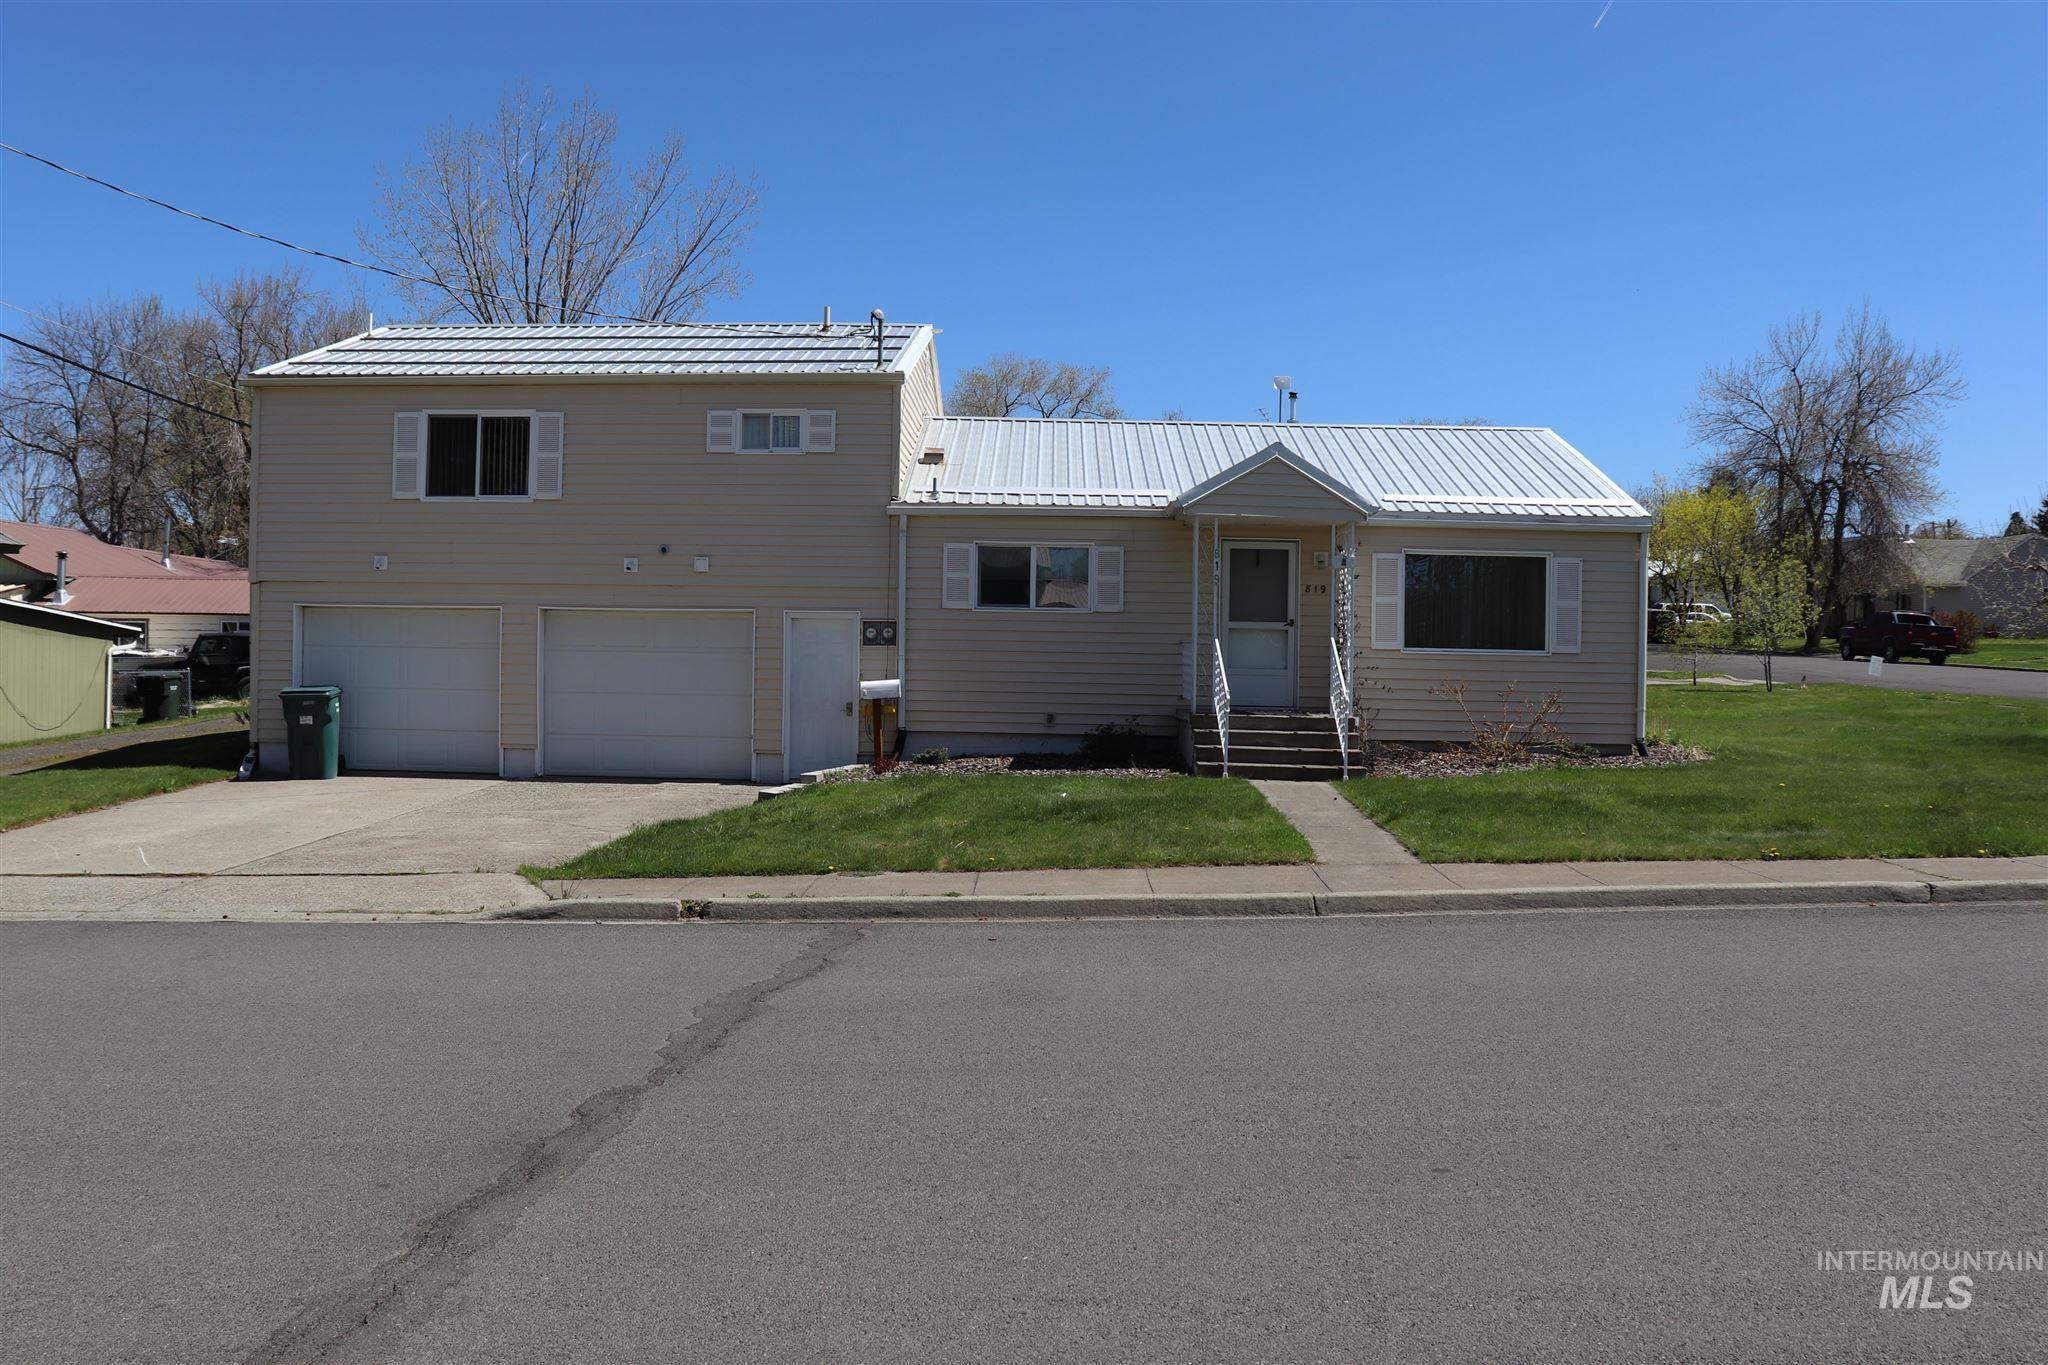 819 S HALL ST Property Photo - Grangeville, ID real estate listing